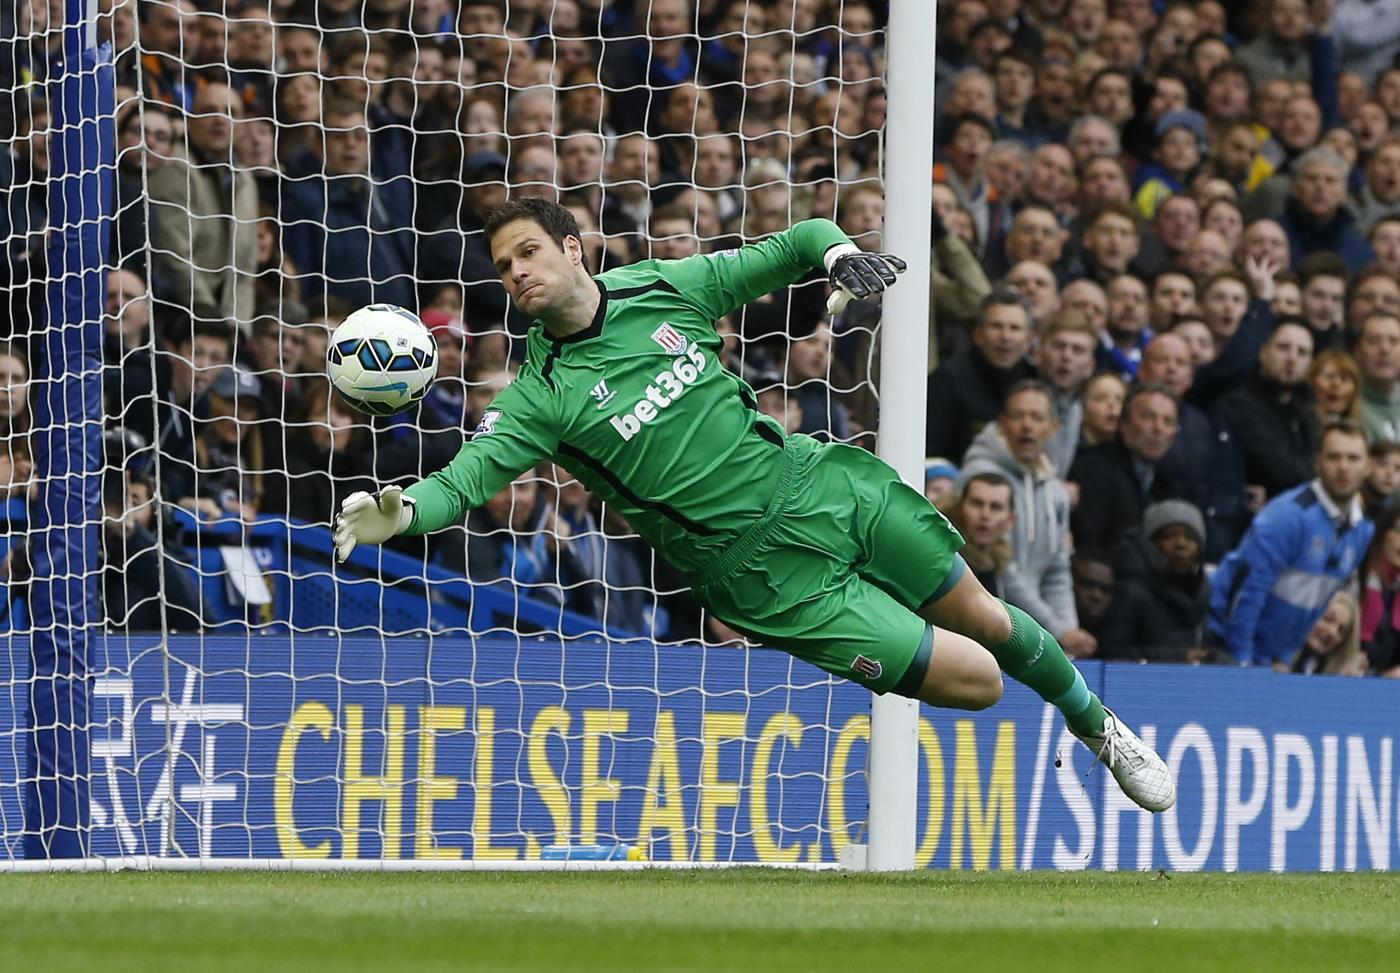 It's time Stoke City manager Mark Hughes dropped Asmir Begovic